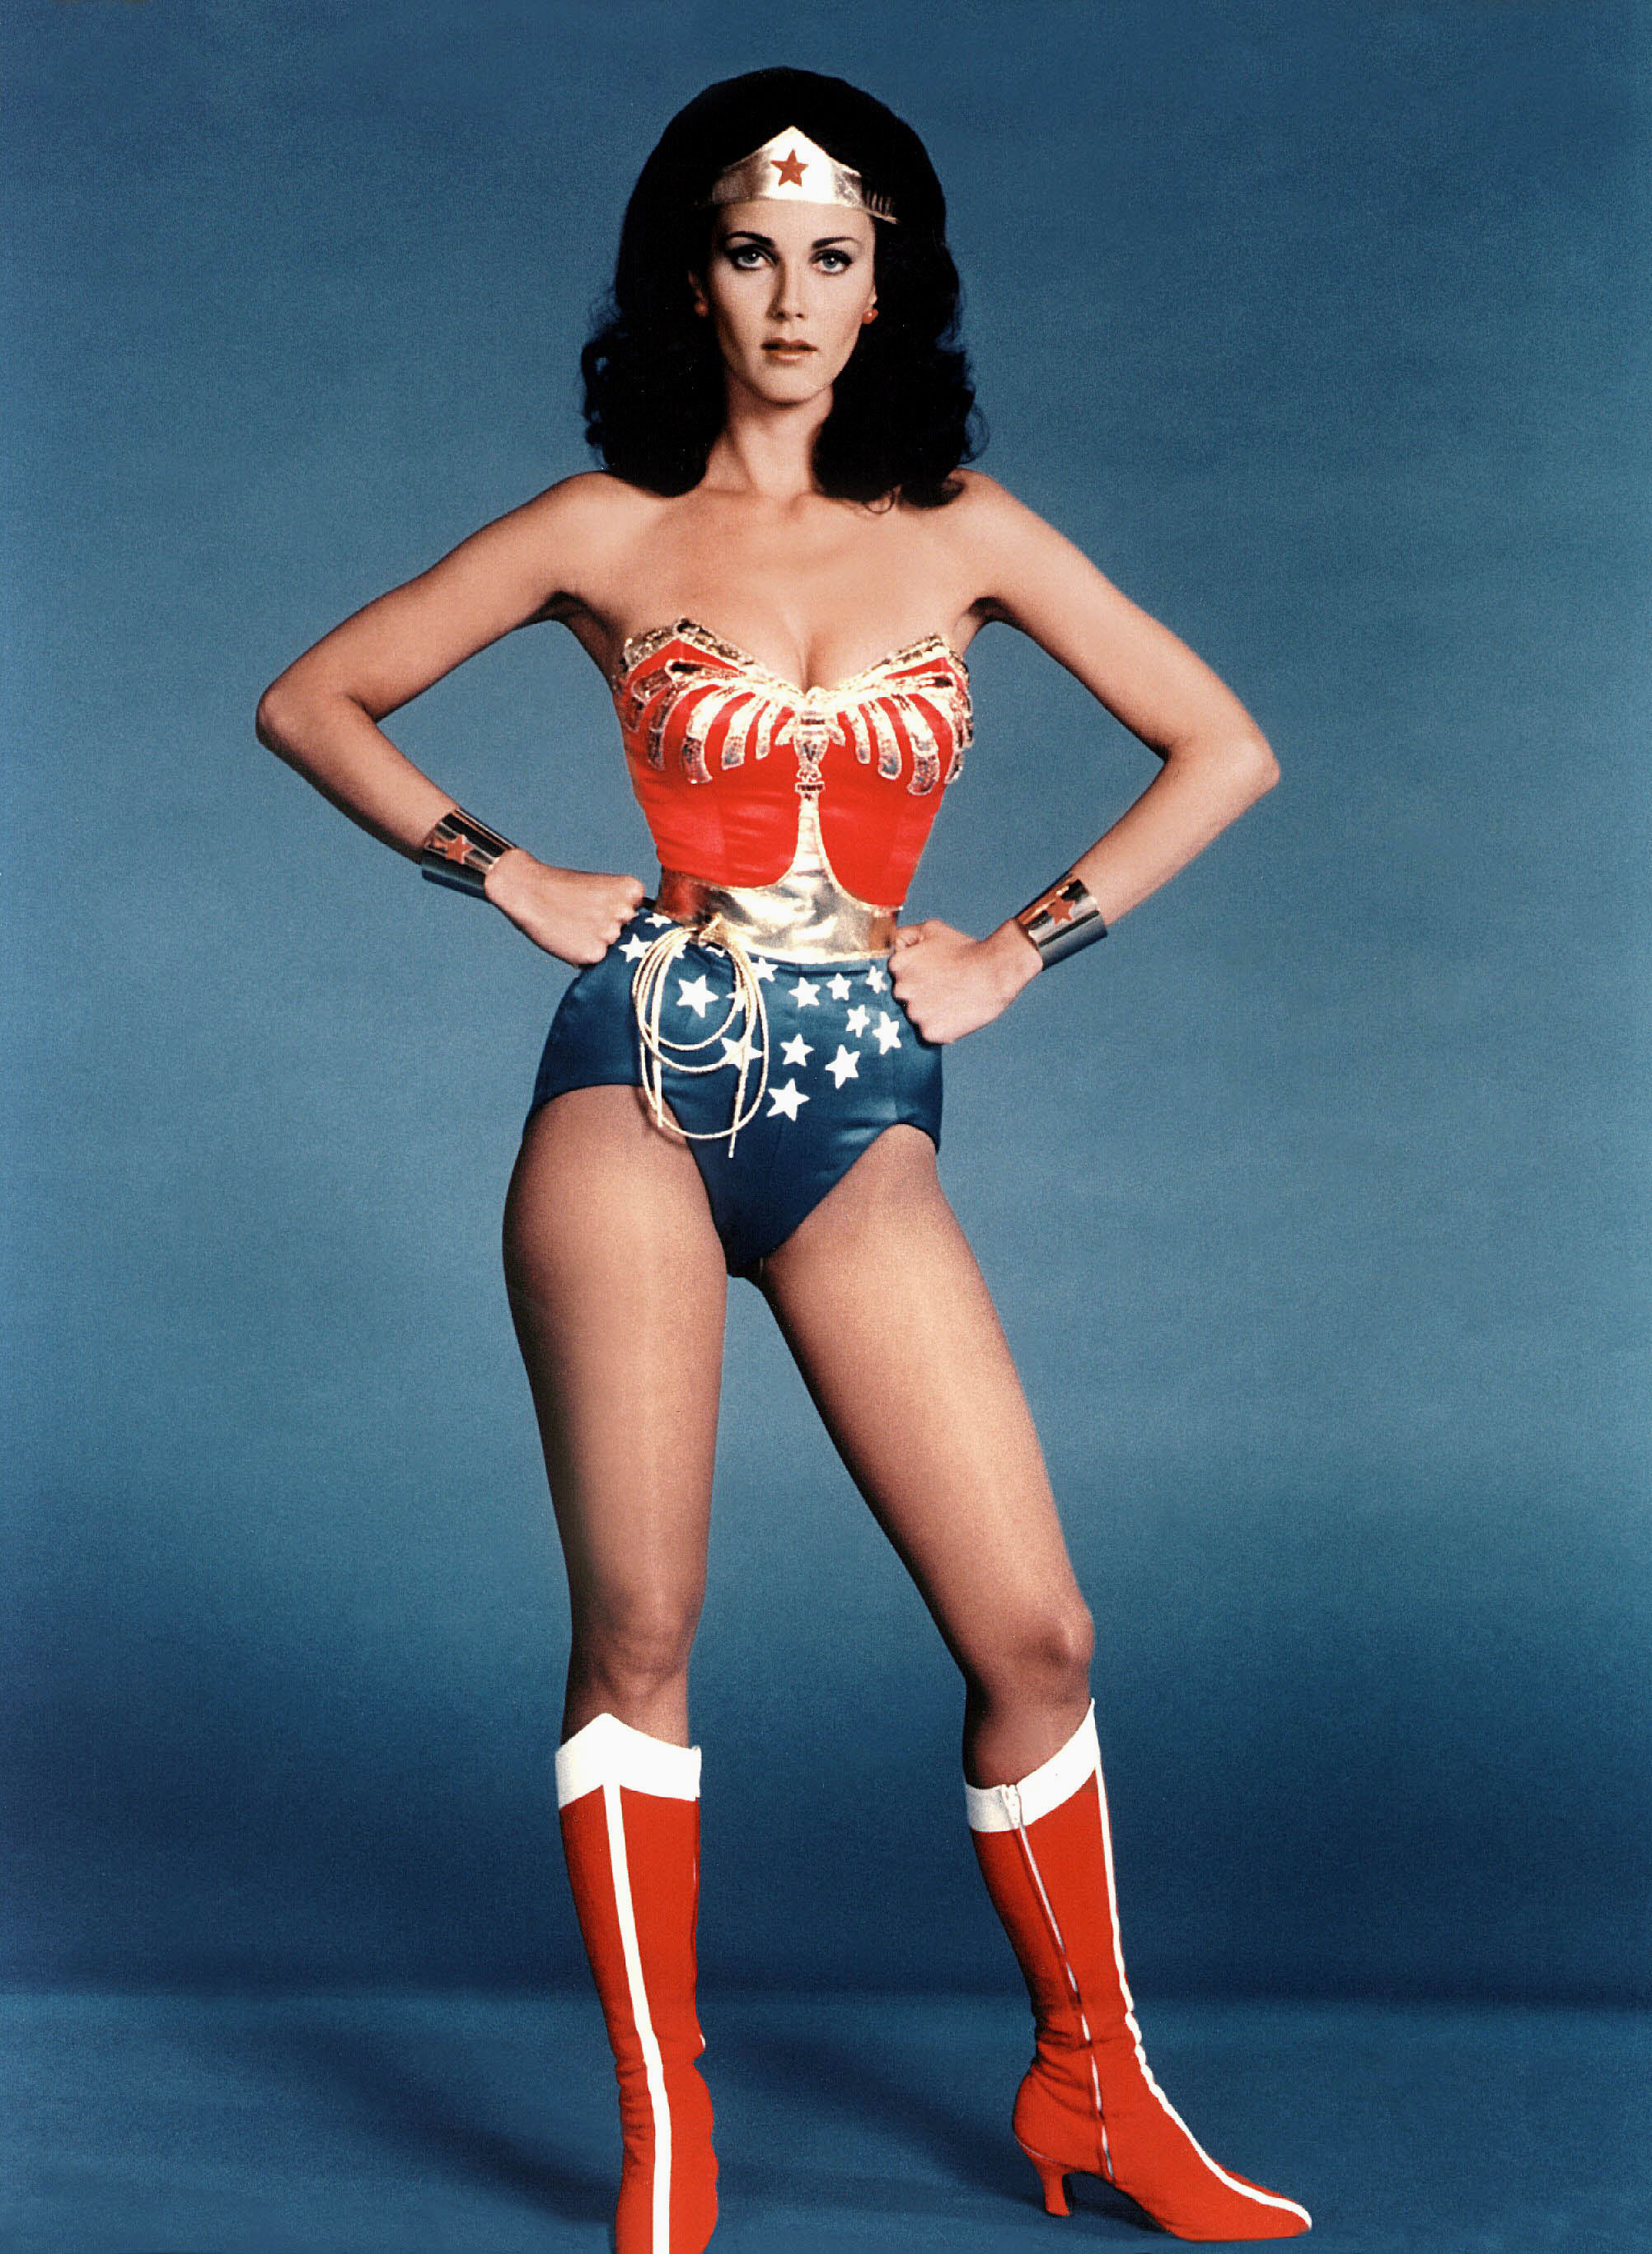 The Wonder Woman is one of three power postures you should practice